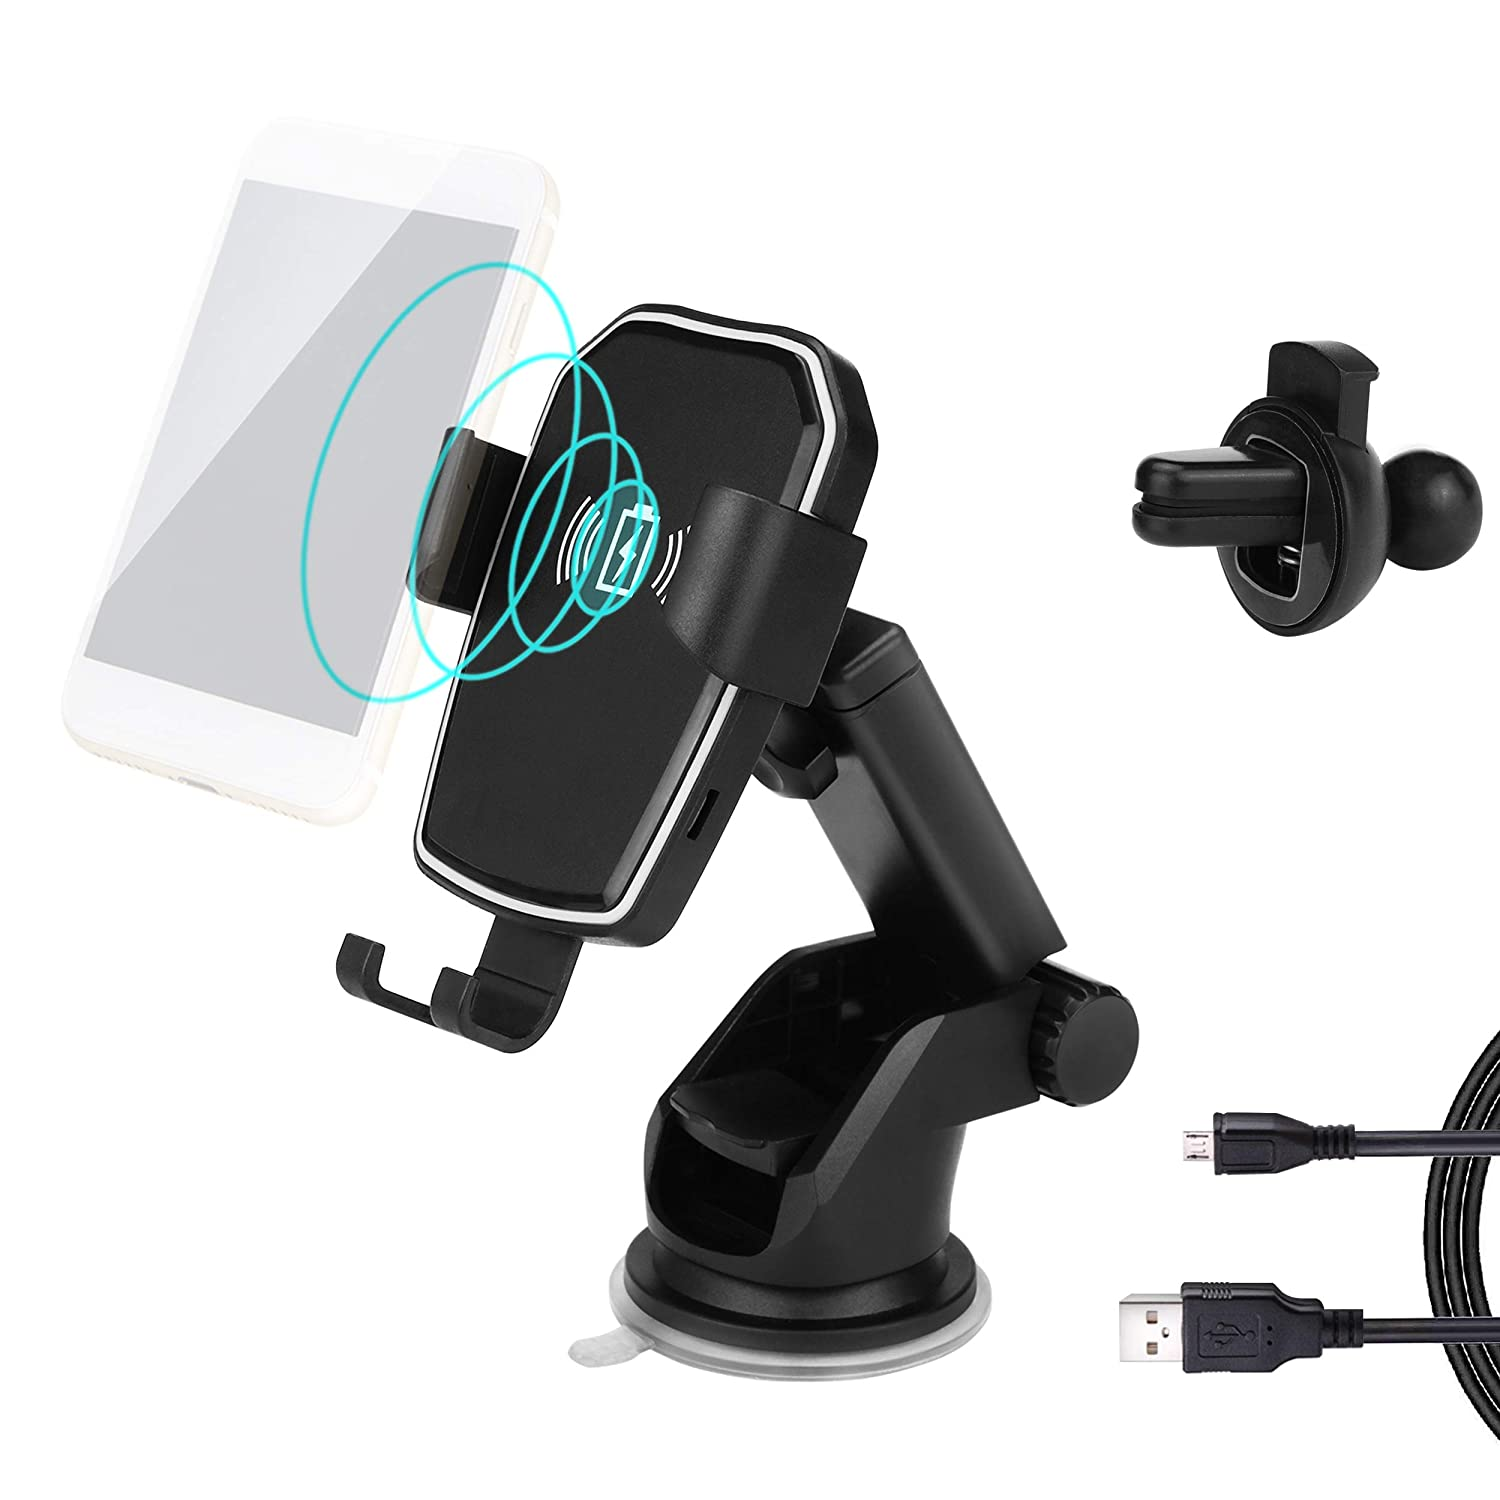 YATA Wireless Car Charger Mount Air Vent 2 in 1 Automatic Gravity Clamp Fast Quick Charging Compatible with iPhone Xs Max XR X 8 Plus Compatible Samsung Galaxy S9 S8 S7 Plus Note 9 8 5 Qi Enable Phone Discover New World